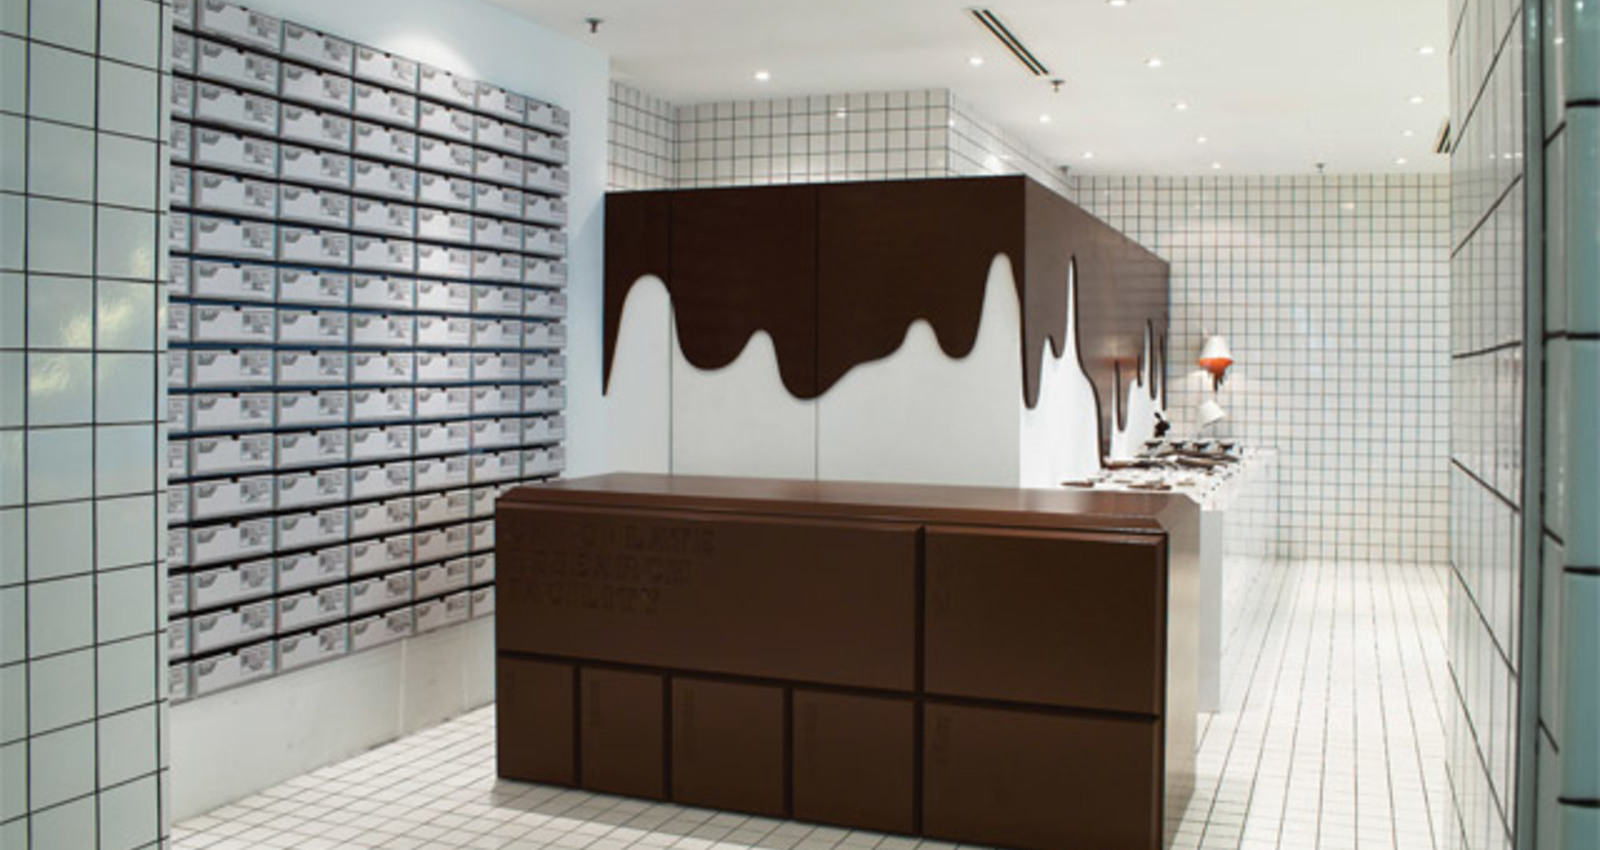 Chocolate Research Facility (Wheelock Place)